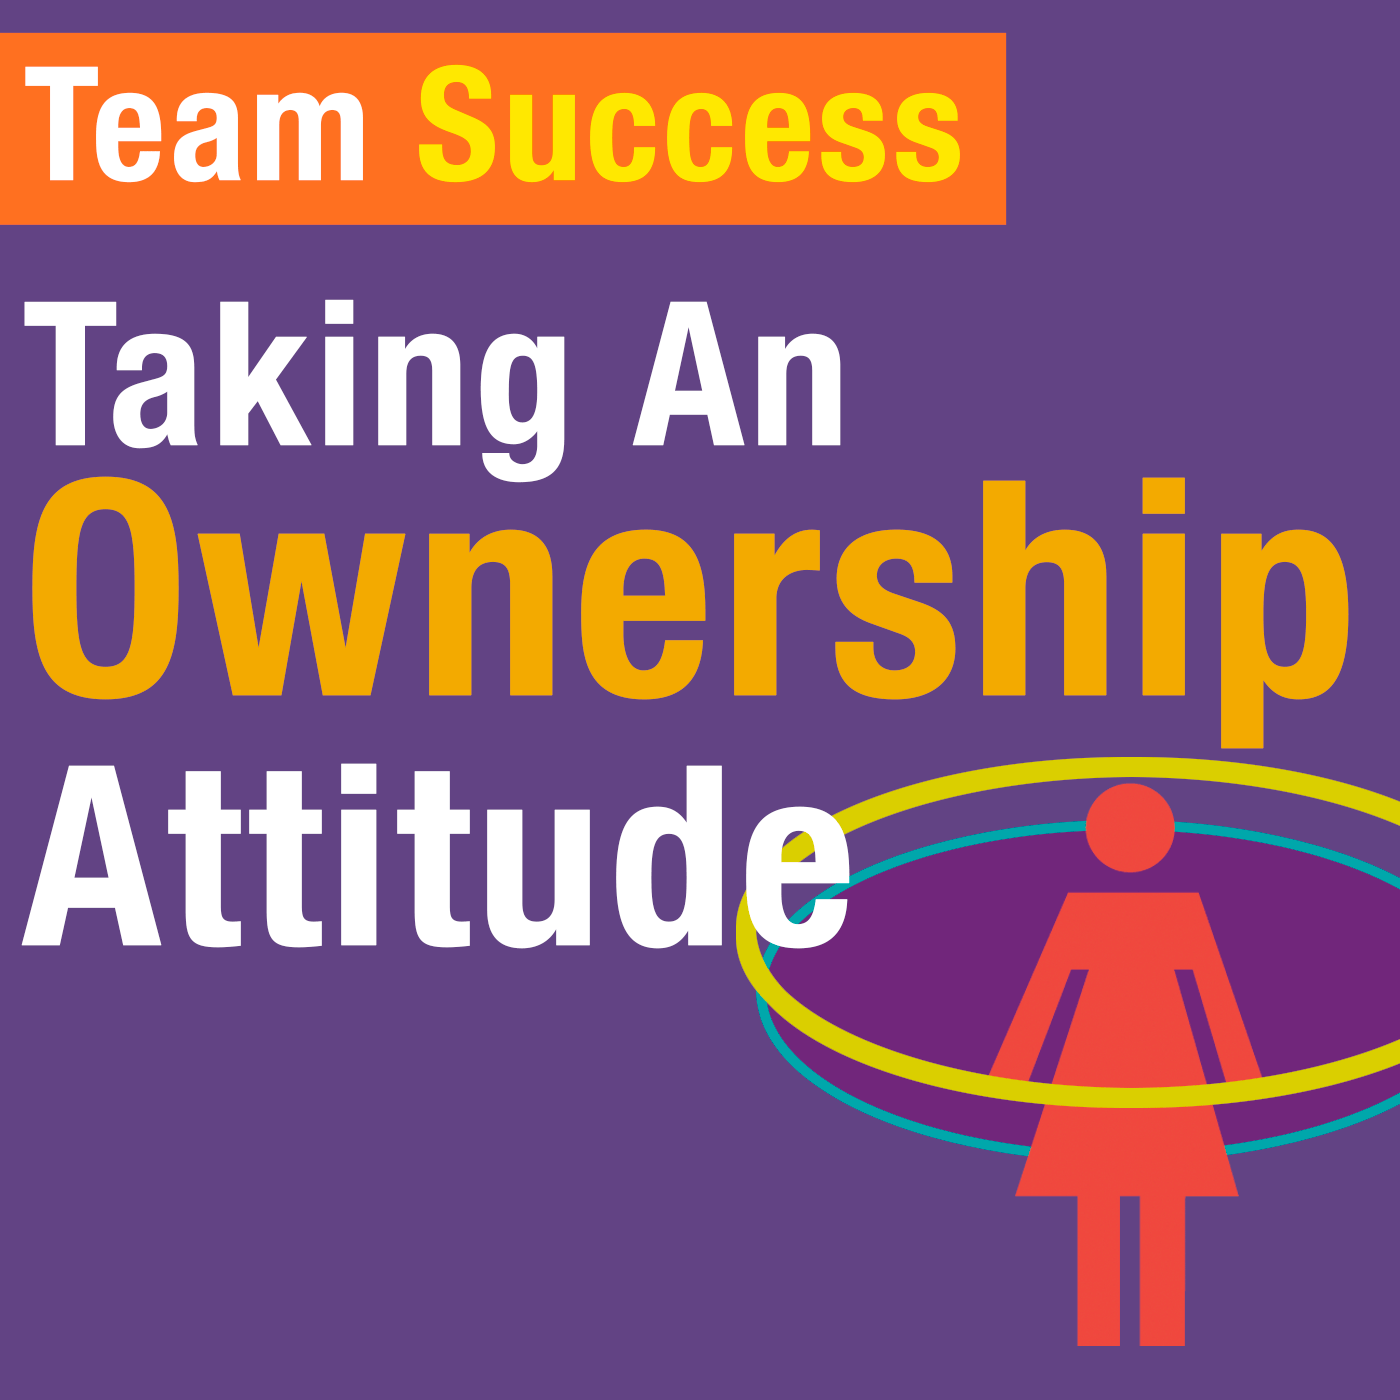 Does Your Team Have An Ldquo Ownership Attitude Rdquo